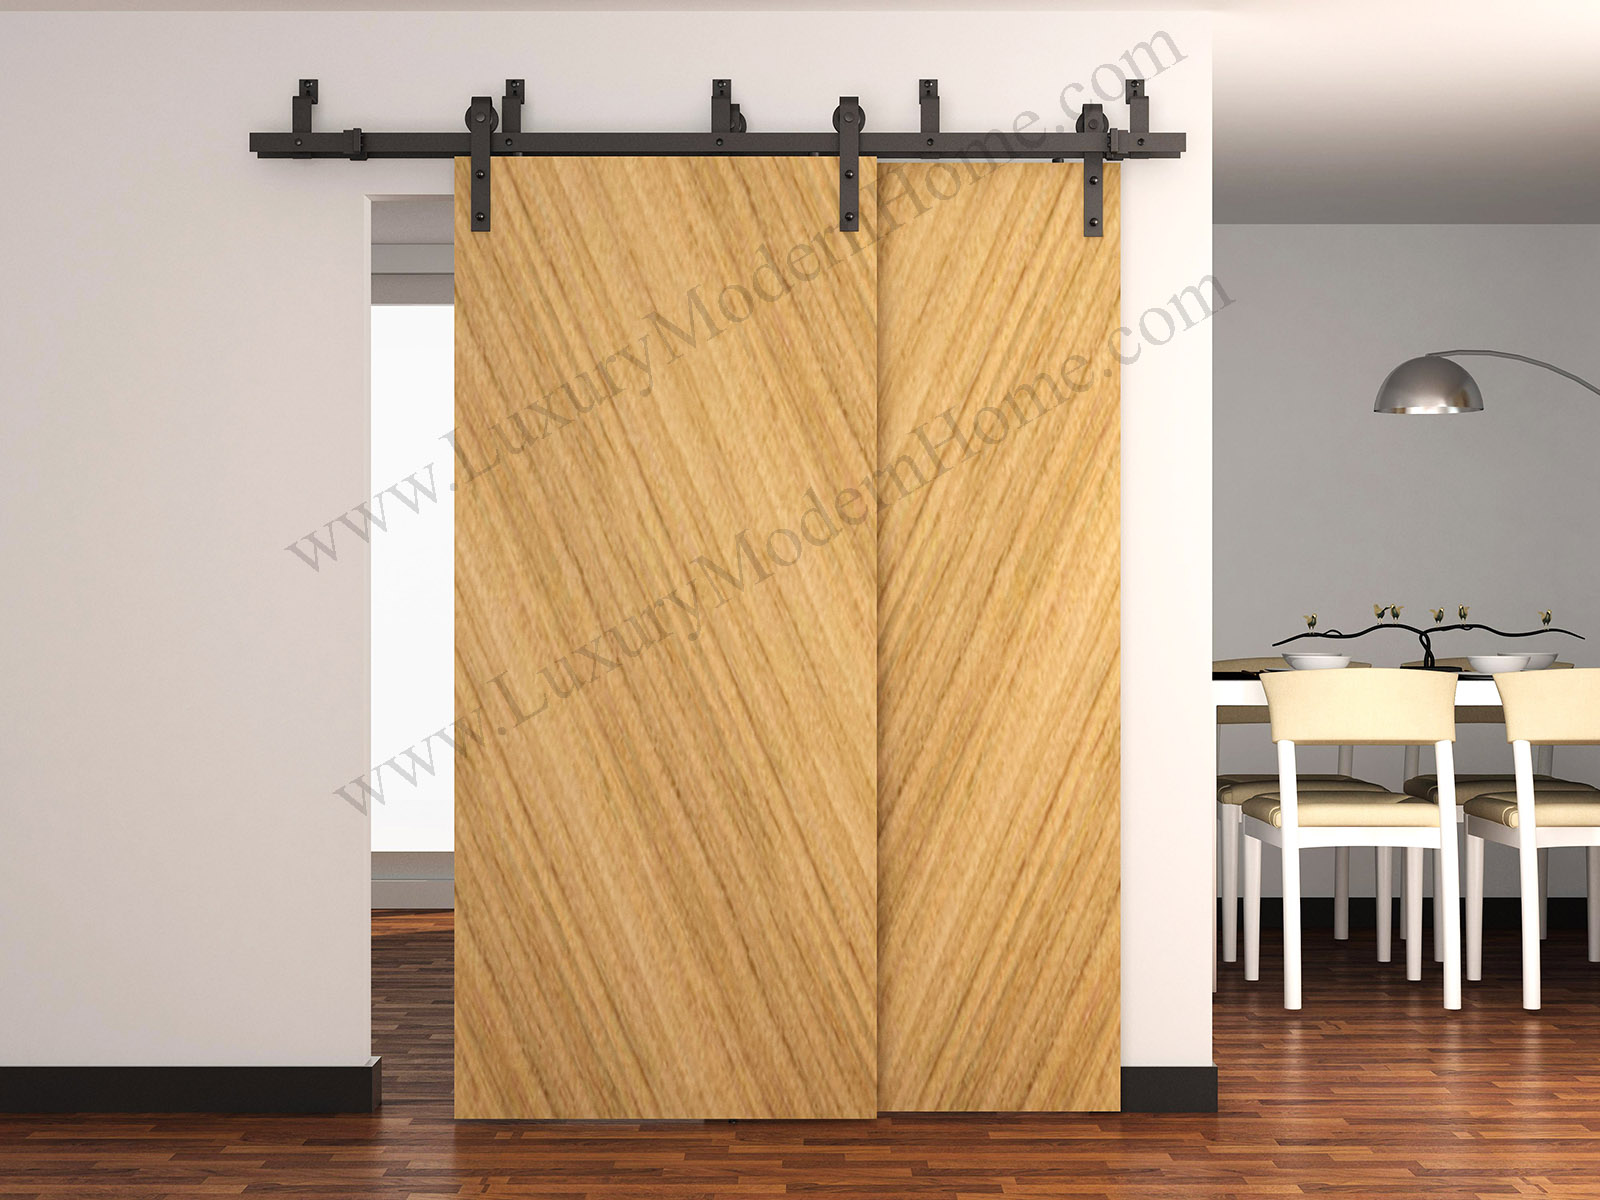 Bypass Barn Door Hardware austin - bypass sliding barn door hardware